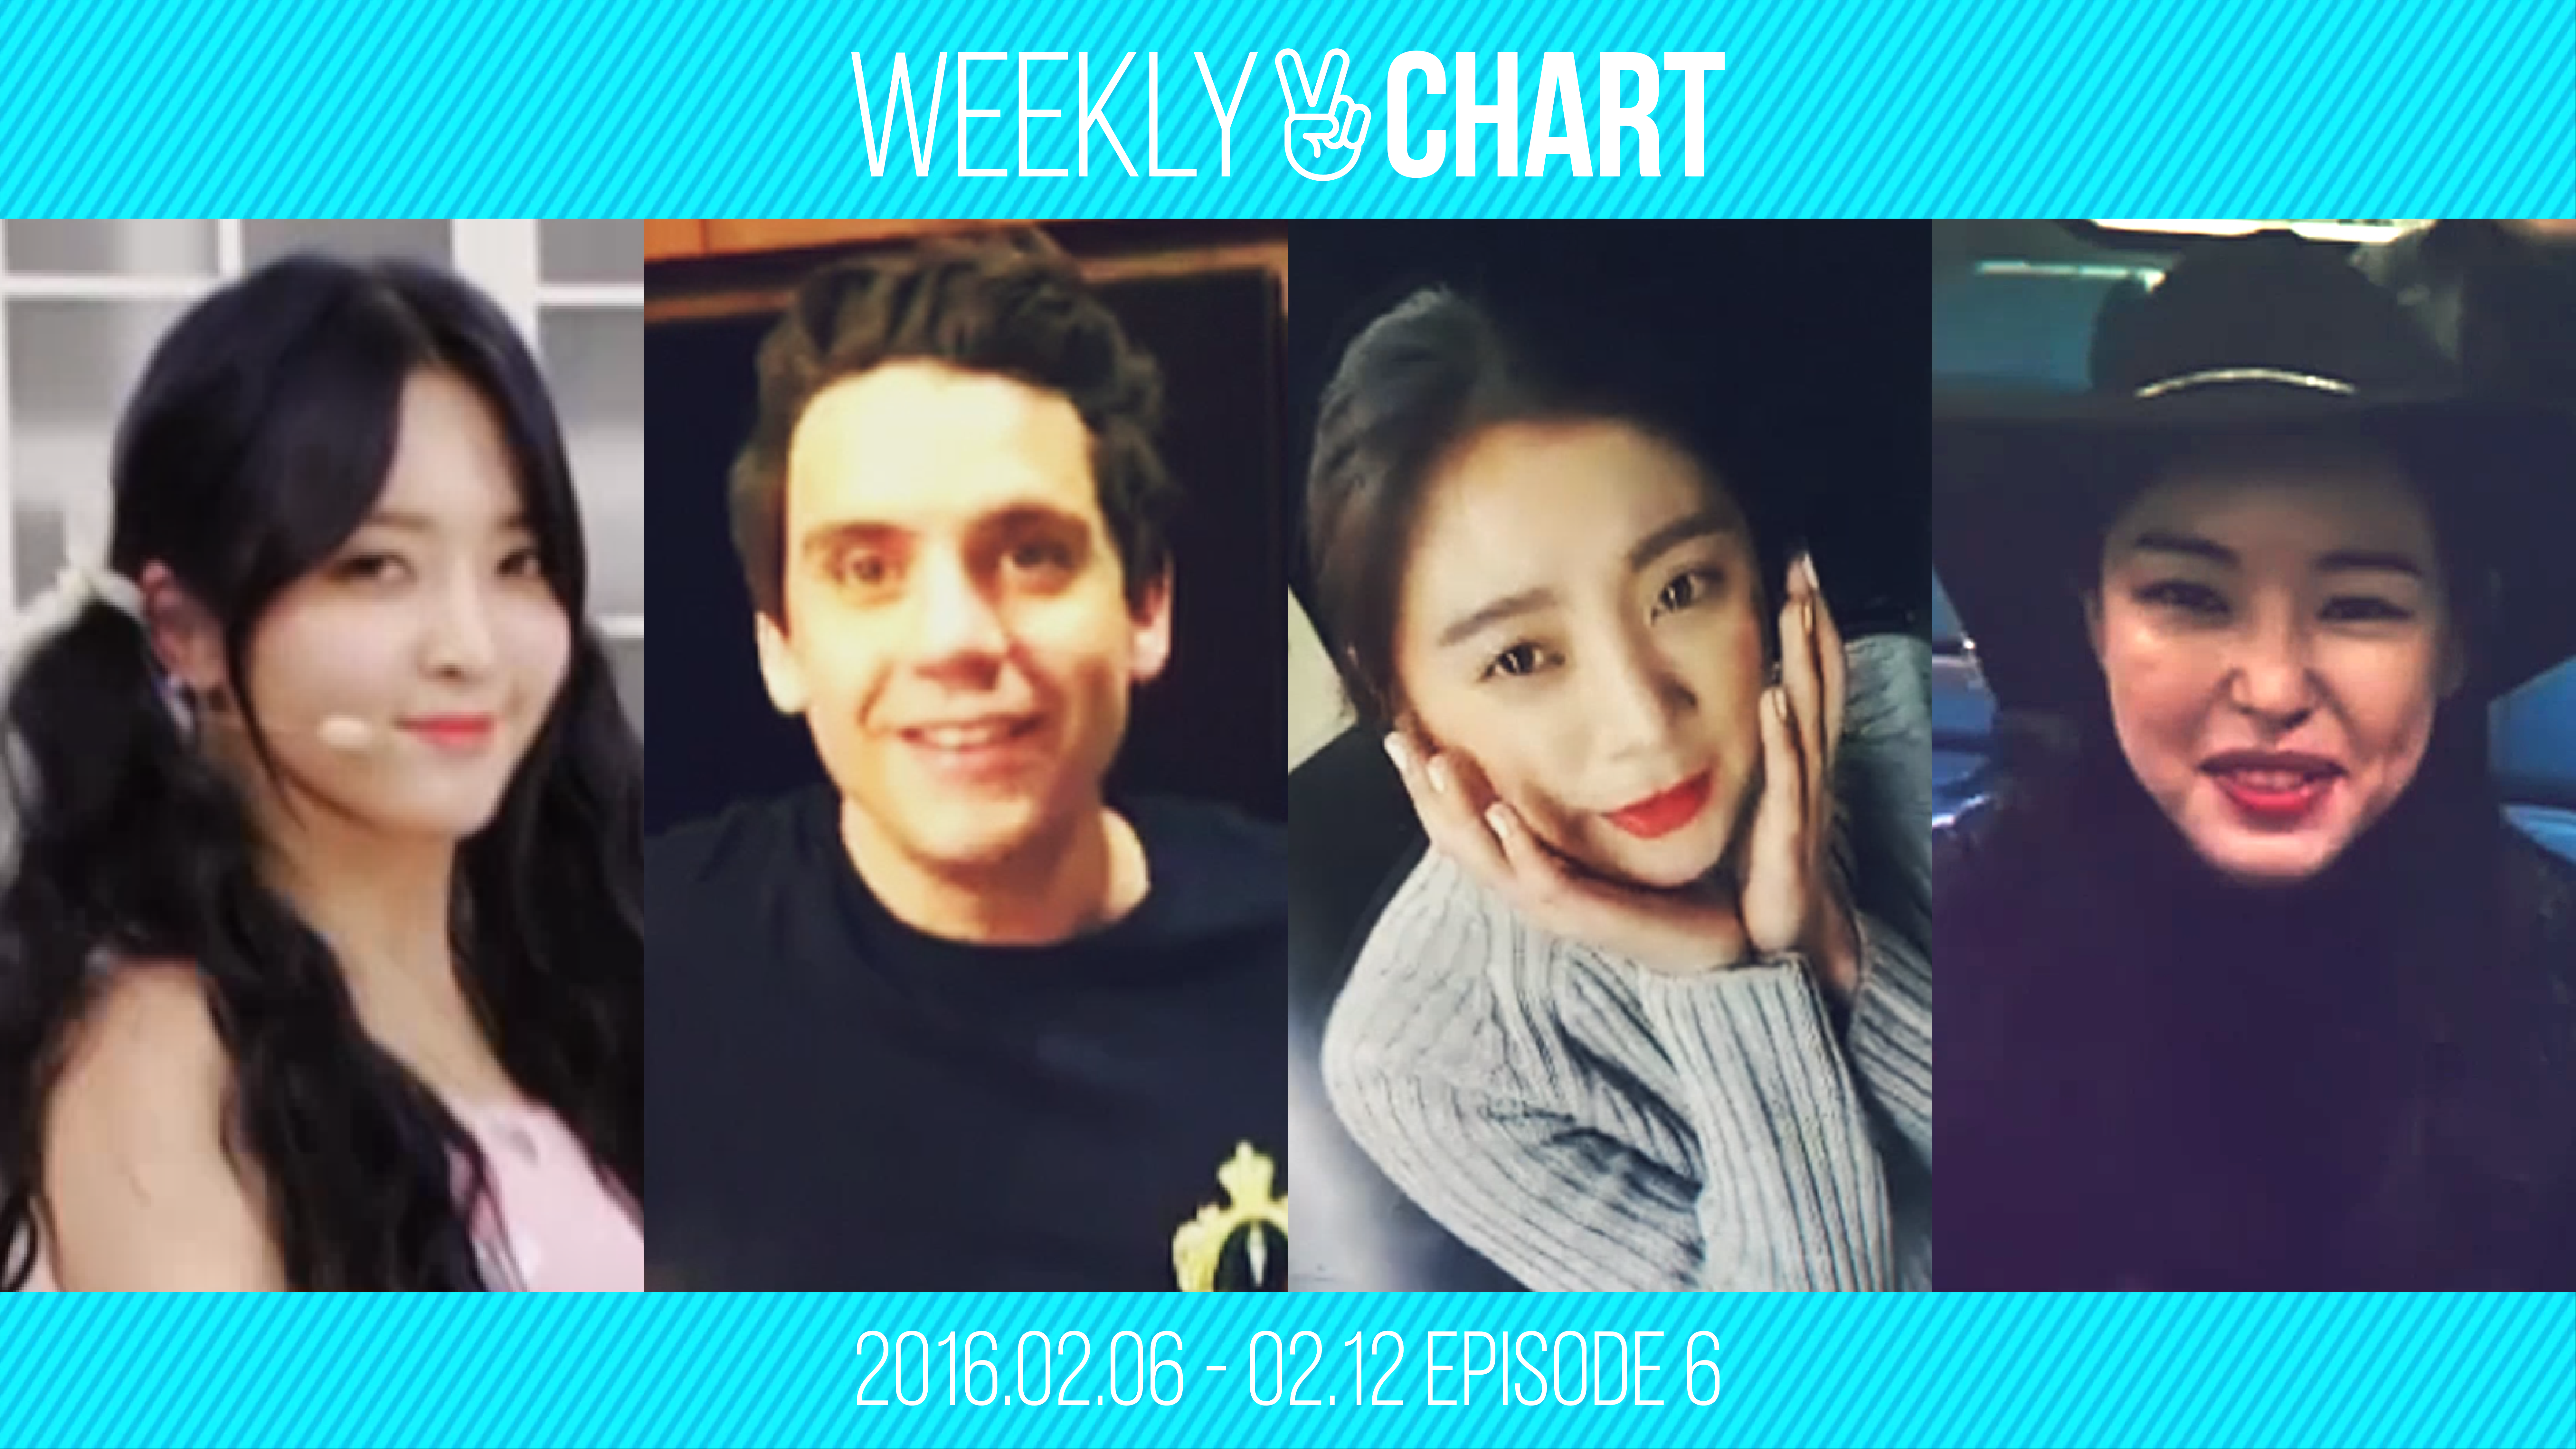 [WEEKLY V CHART] 2016.2.6 - 2.12 EPISODE